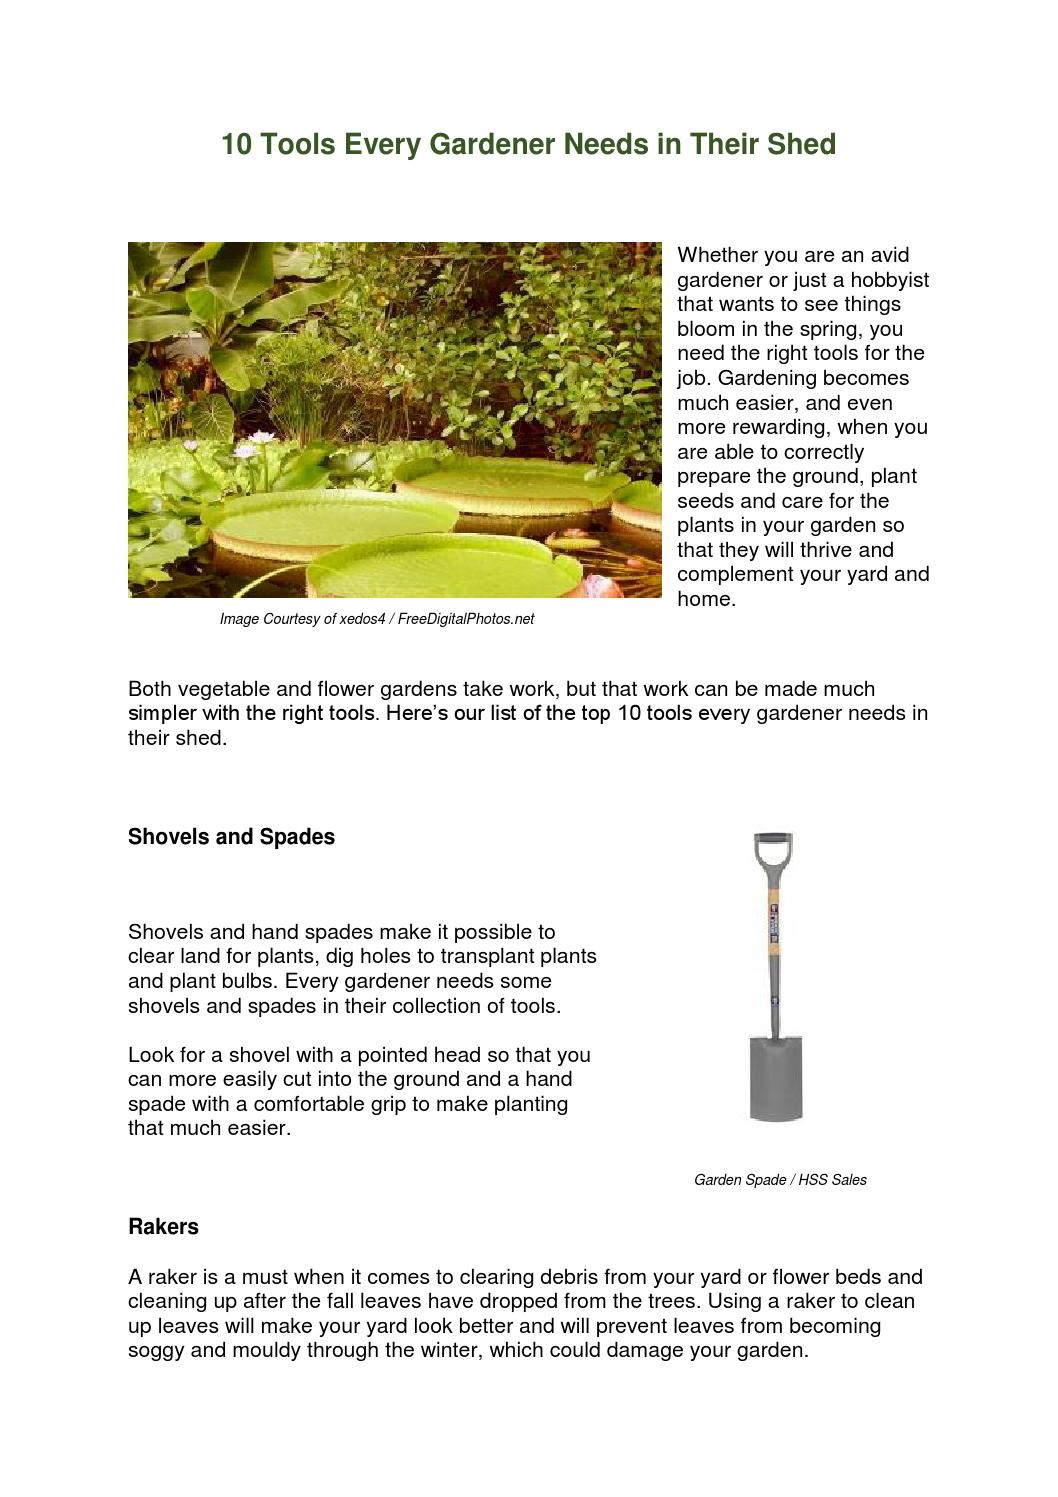 10 Gardening Tools You Need in Your Shed by HSS Sales - issuu